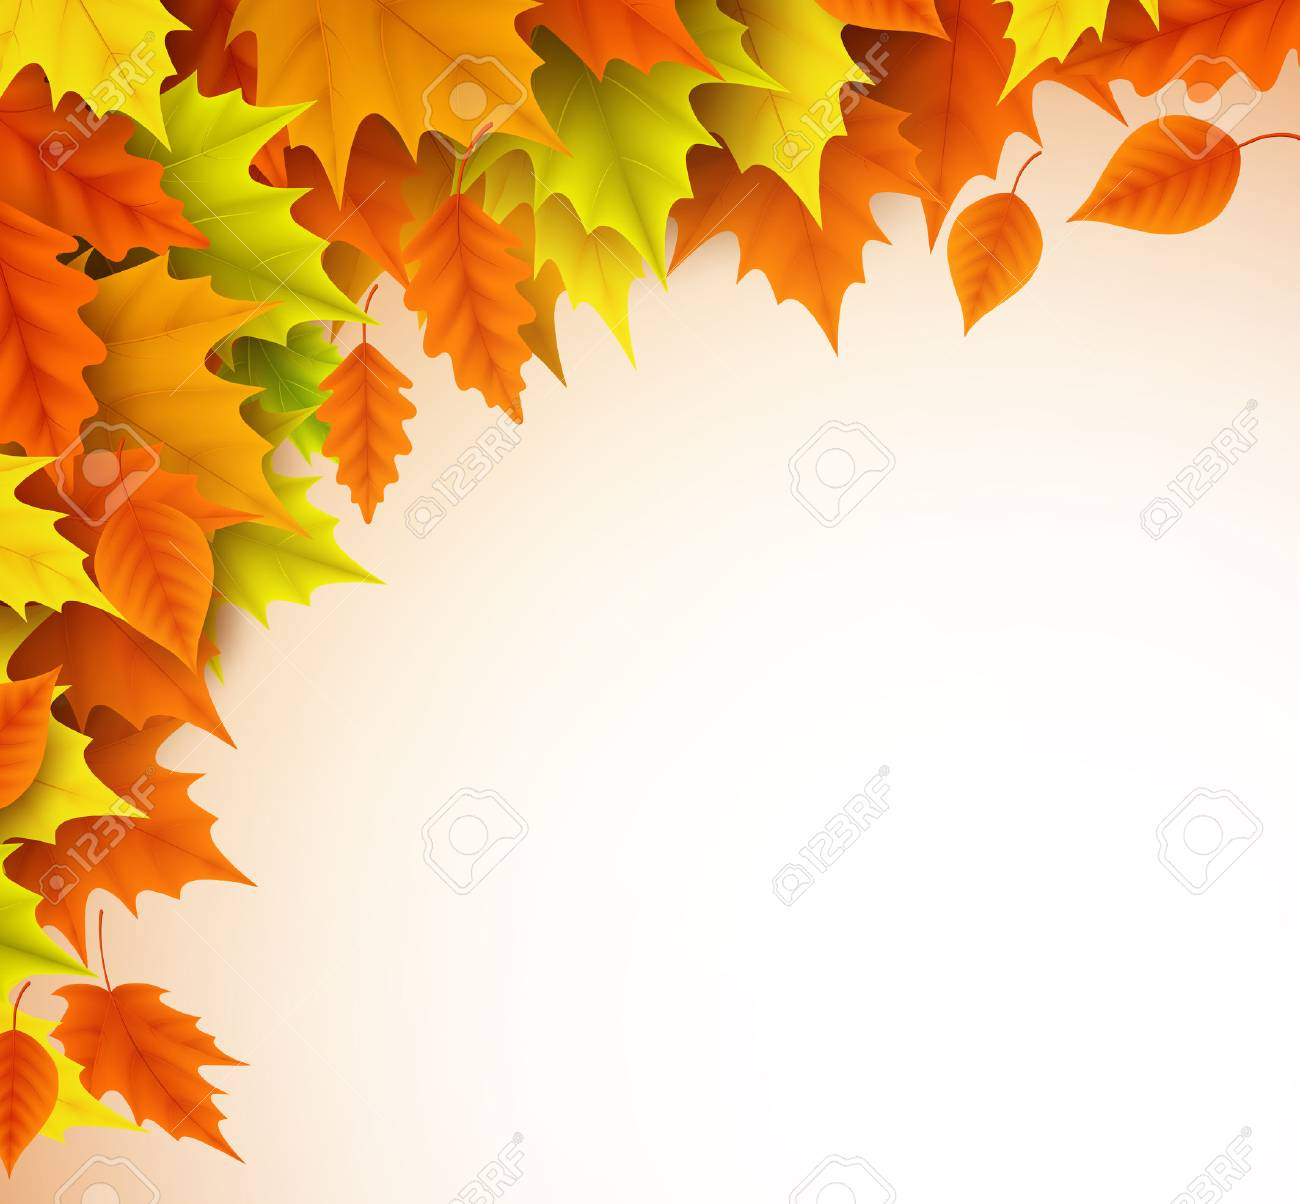 autumn vector background template fall season maple leaves elements